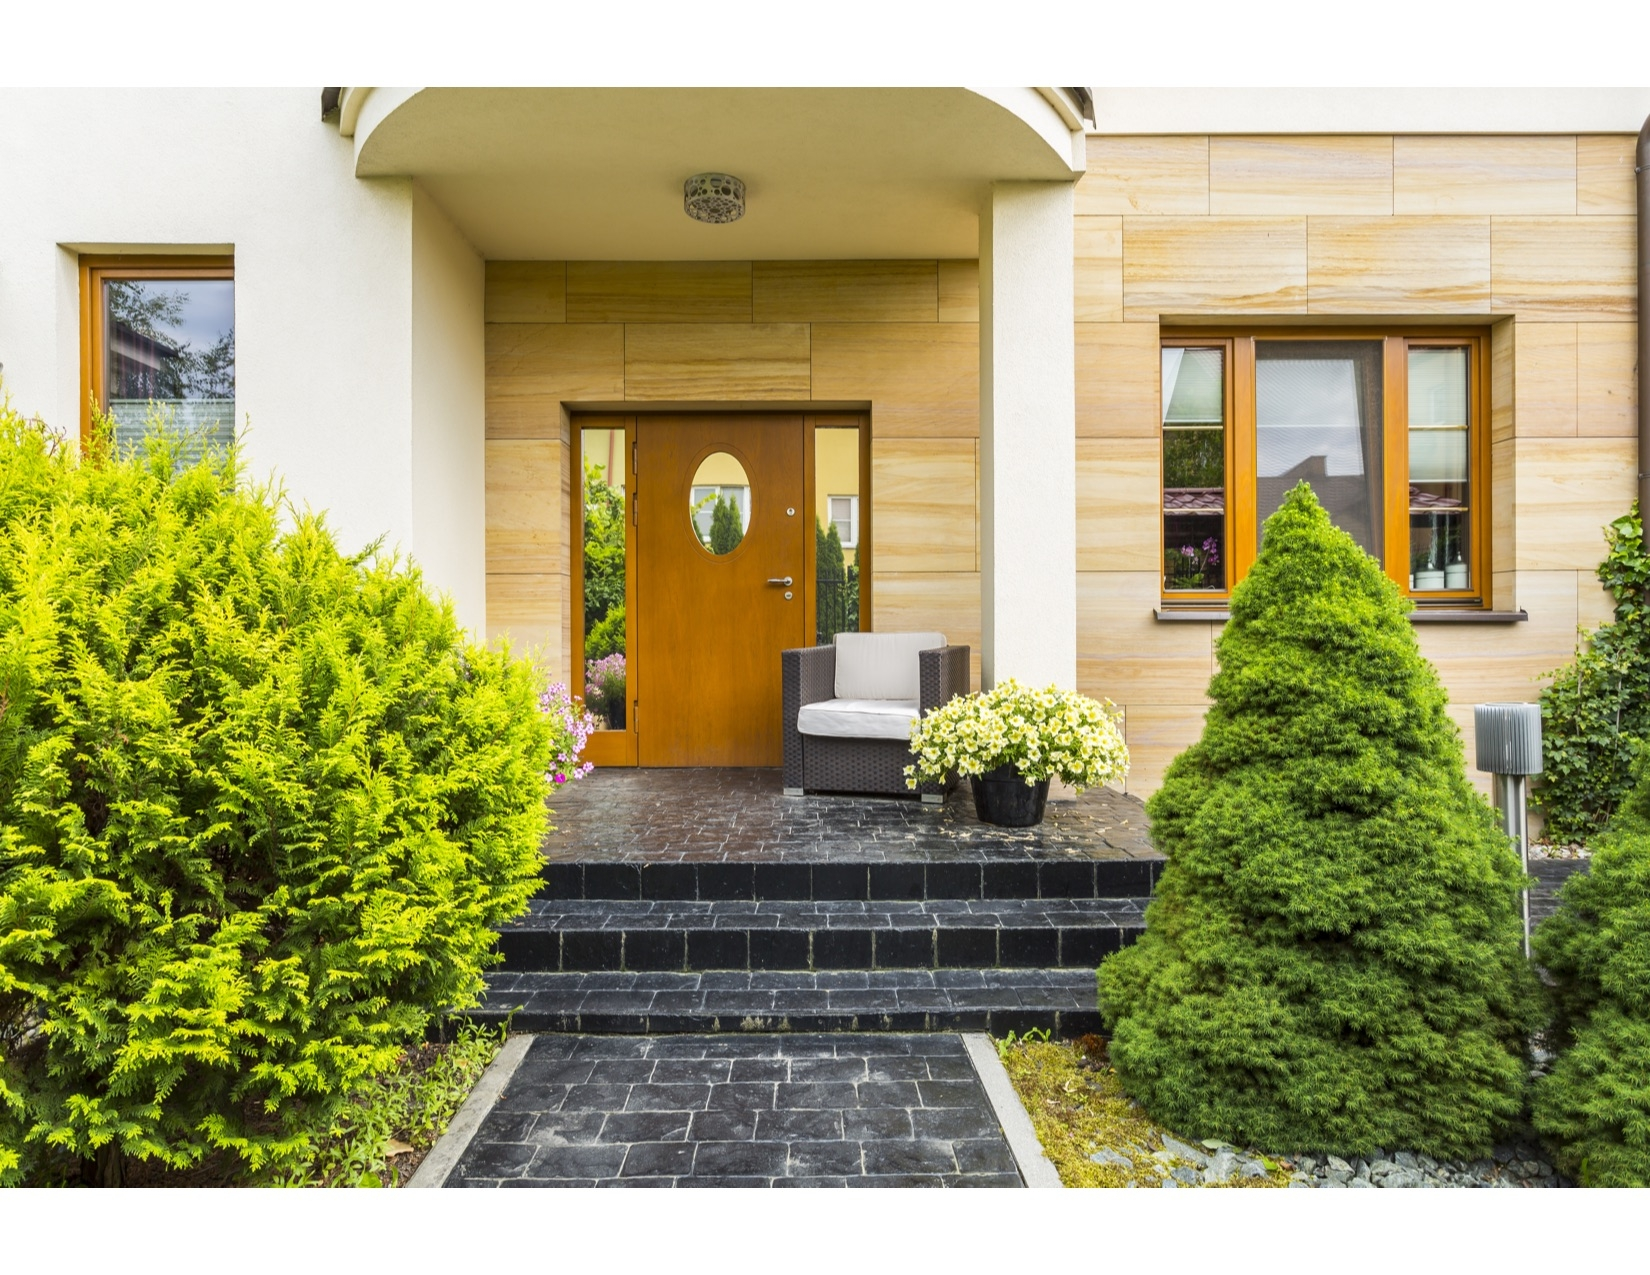 stylish-entrance-to-the-modern-house-P3QDFBU.jpg